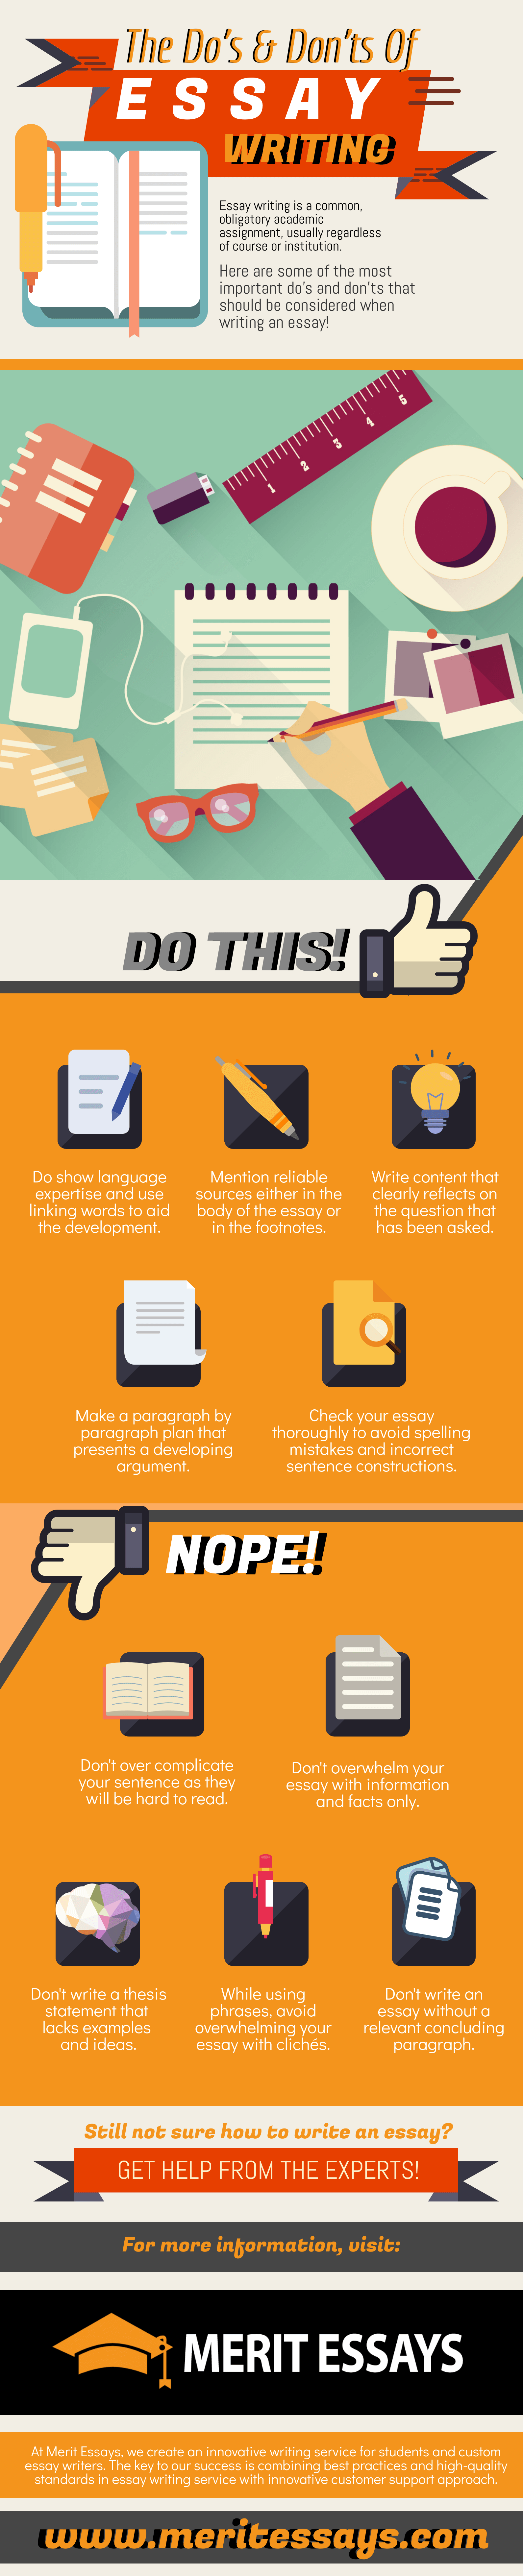 The Do's and Don'ts of Essay Writing